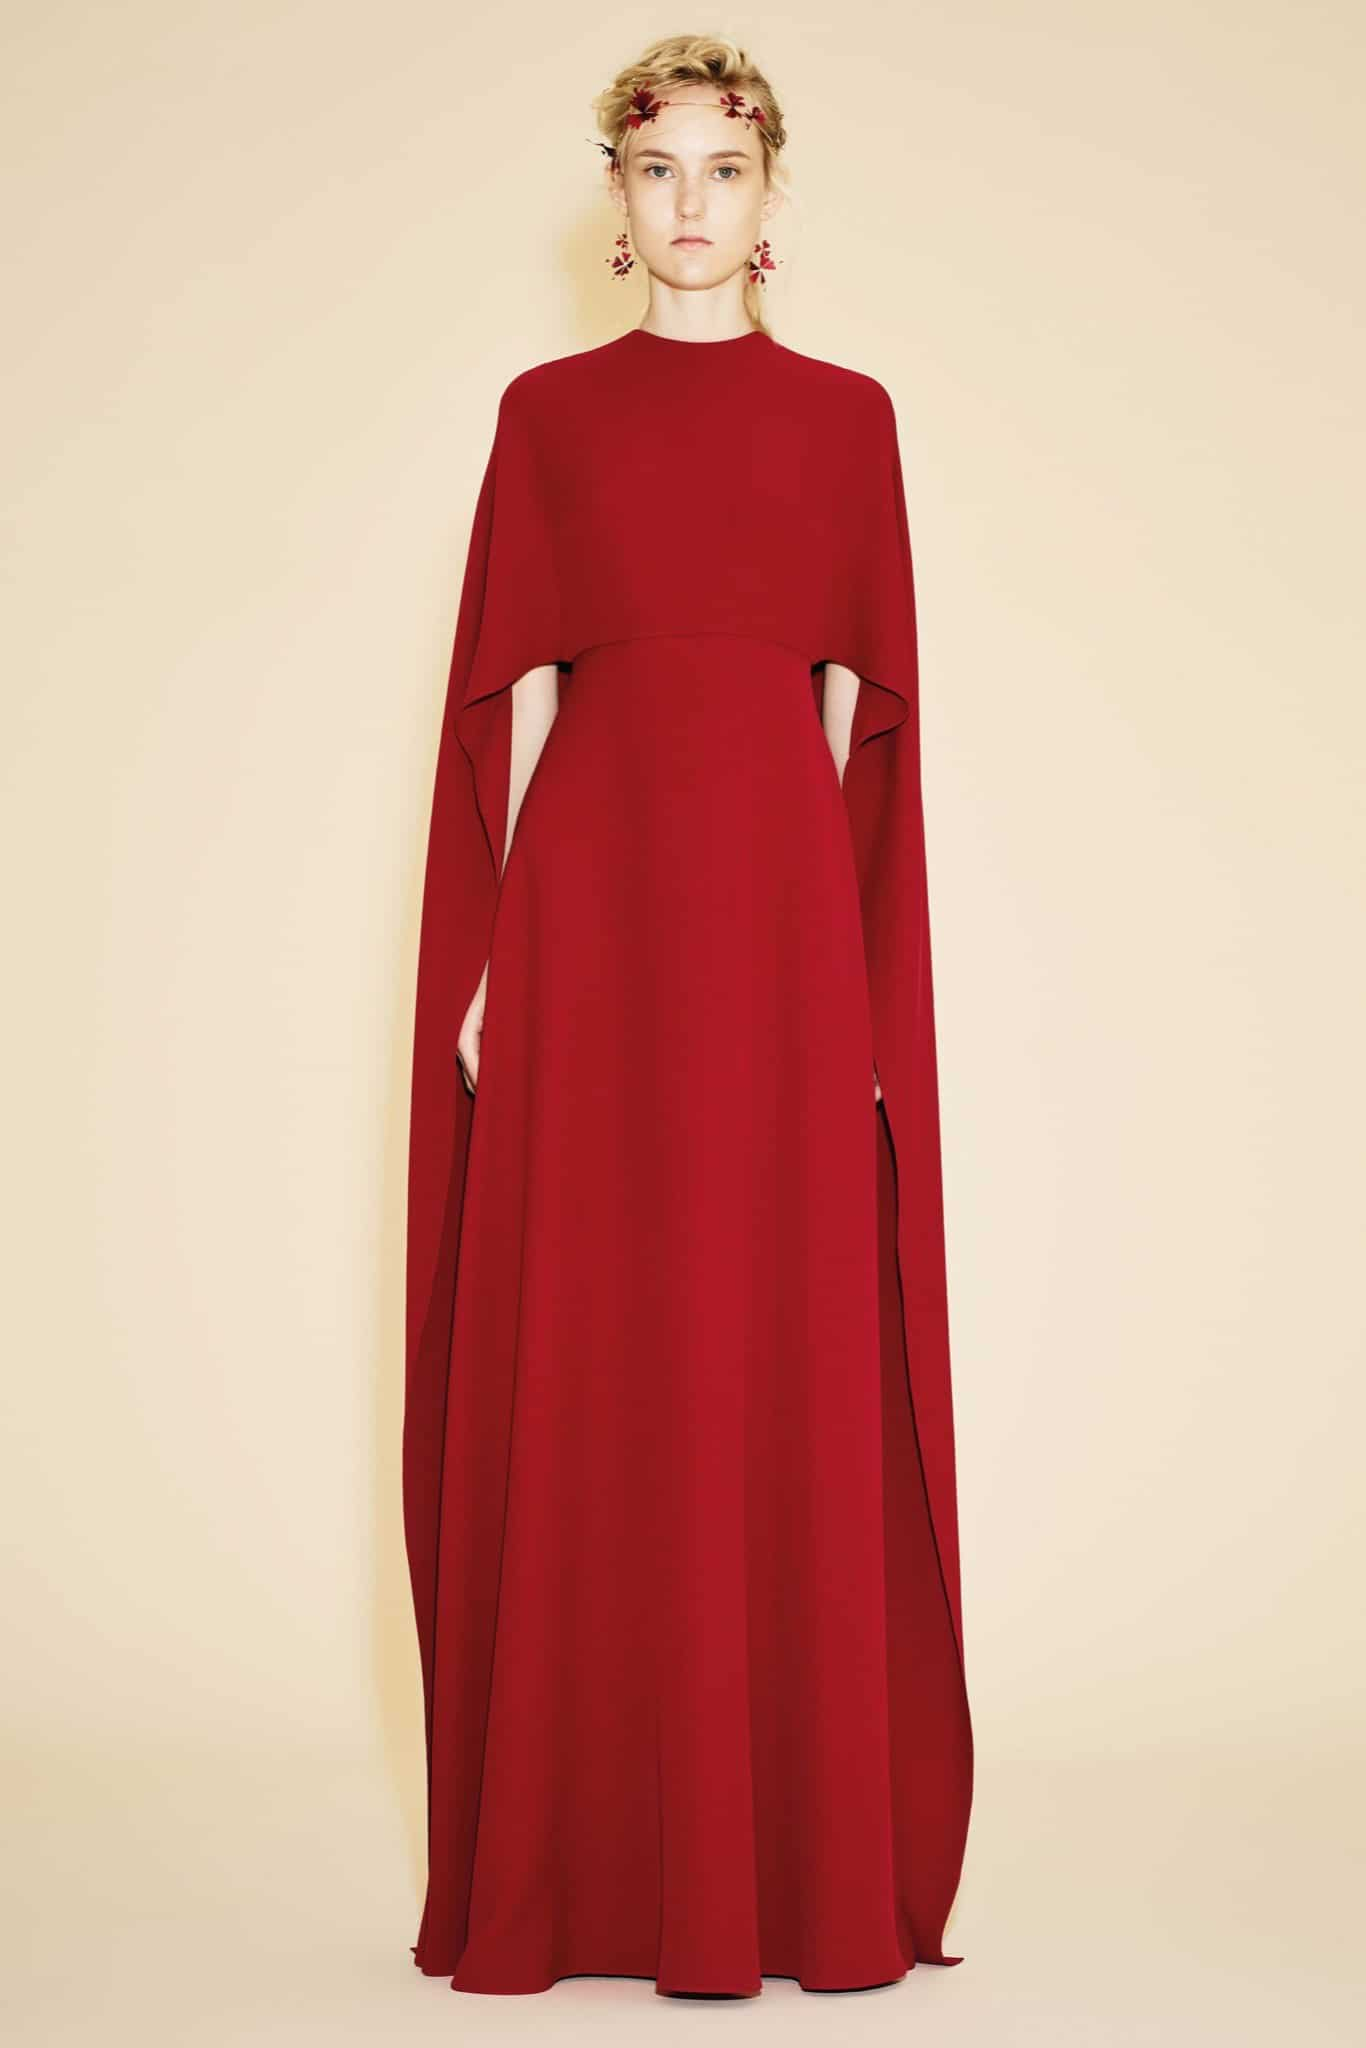 Valentino Resort 2016 Collection Featuring Bold Colors and ...